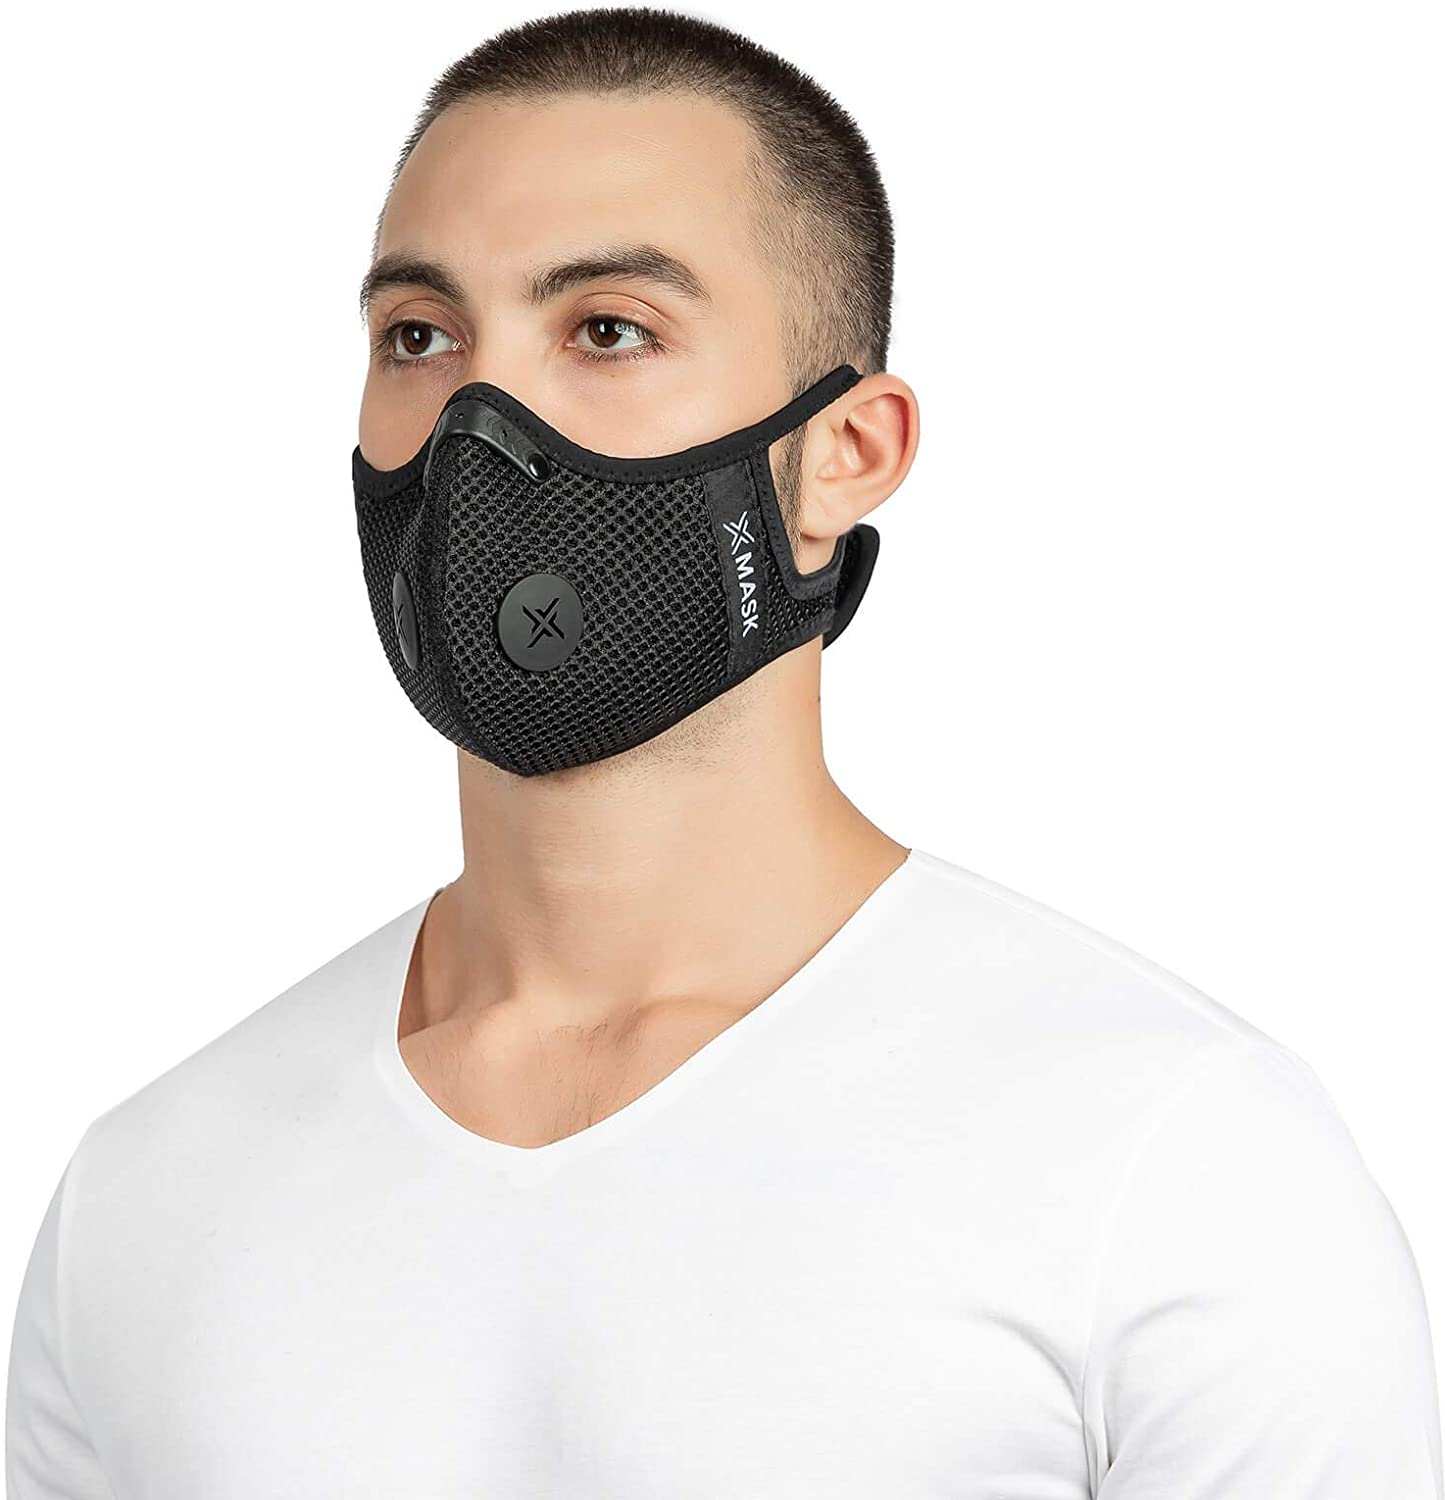 xMask Mesh Vented Athletic Face Mask - Reusable Washable Breathable Comfortable - Adjustable Strap and Nose Wire No Fog - 5 Layer Active Carbon Filter Vents PM2.5 Grade Protection - Men Women Kids